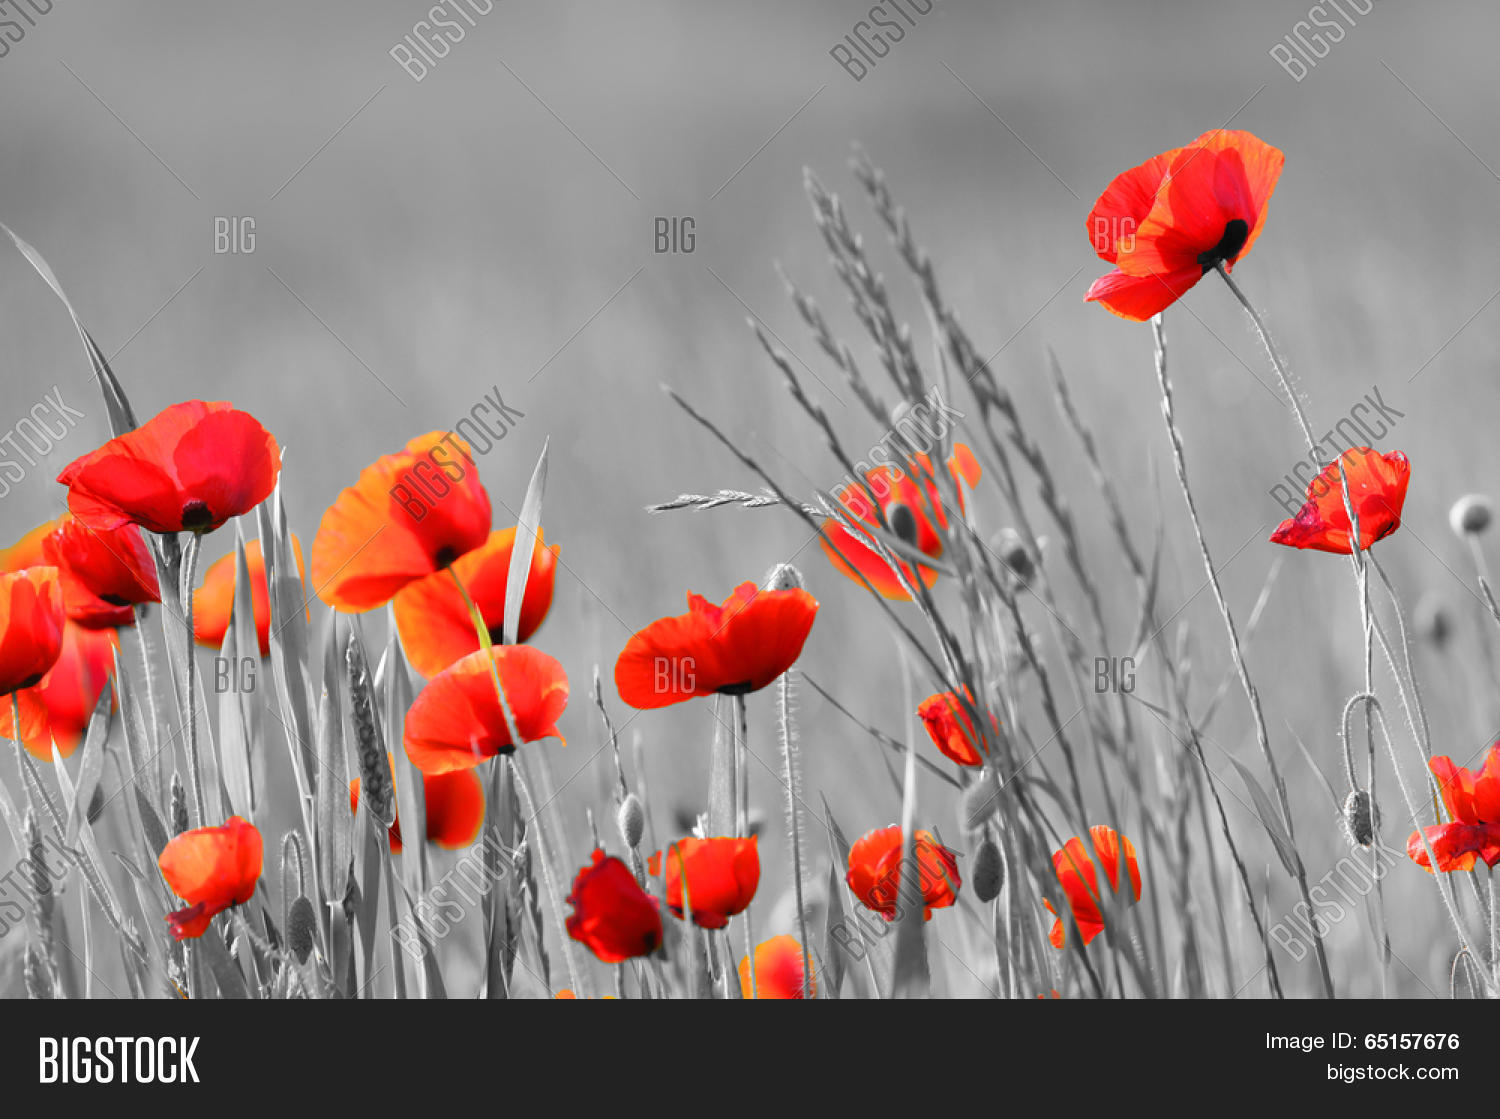 Red Poppy Flowers Image Photo Free Trial Bigstock